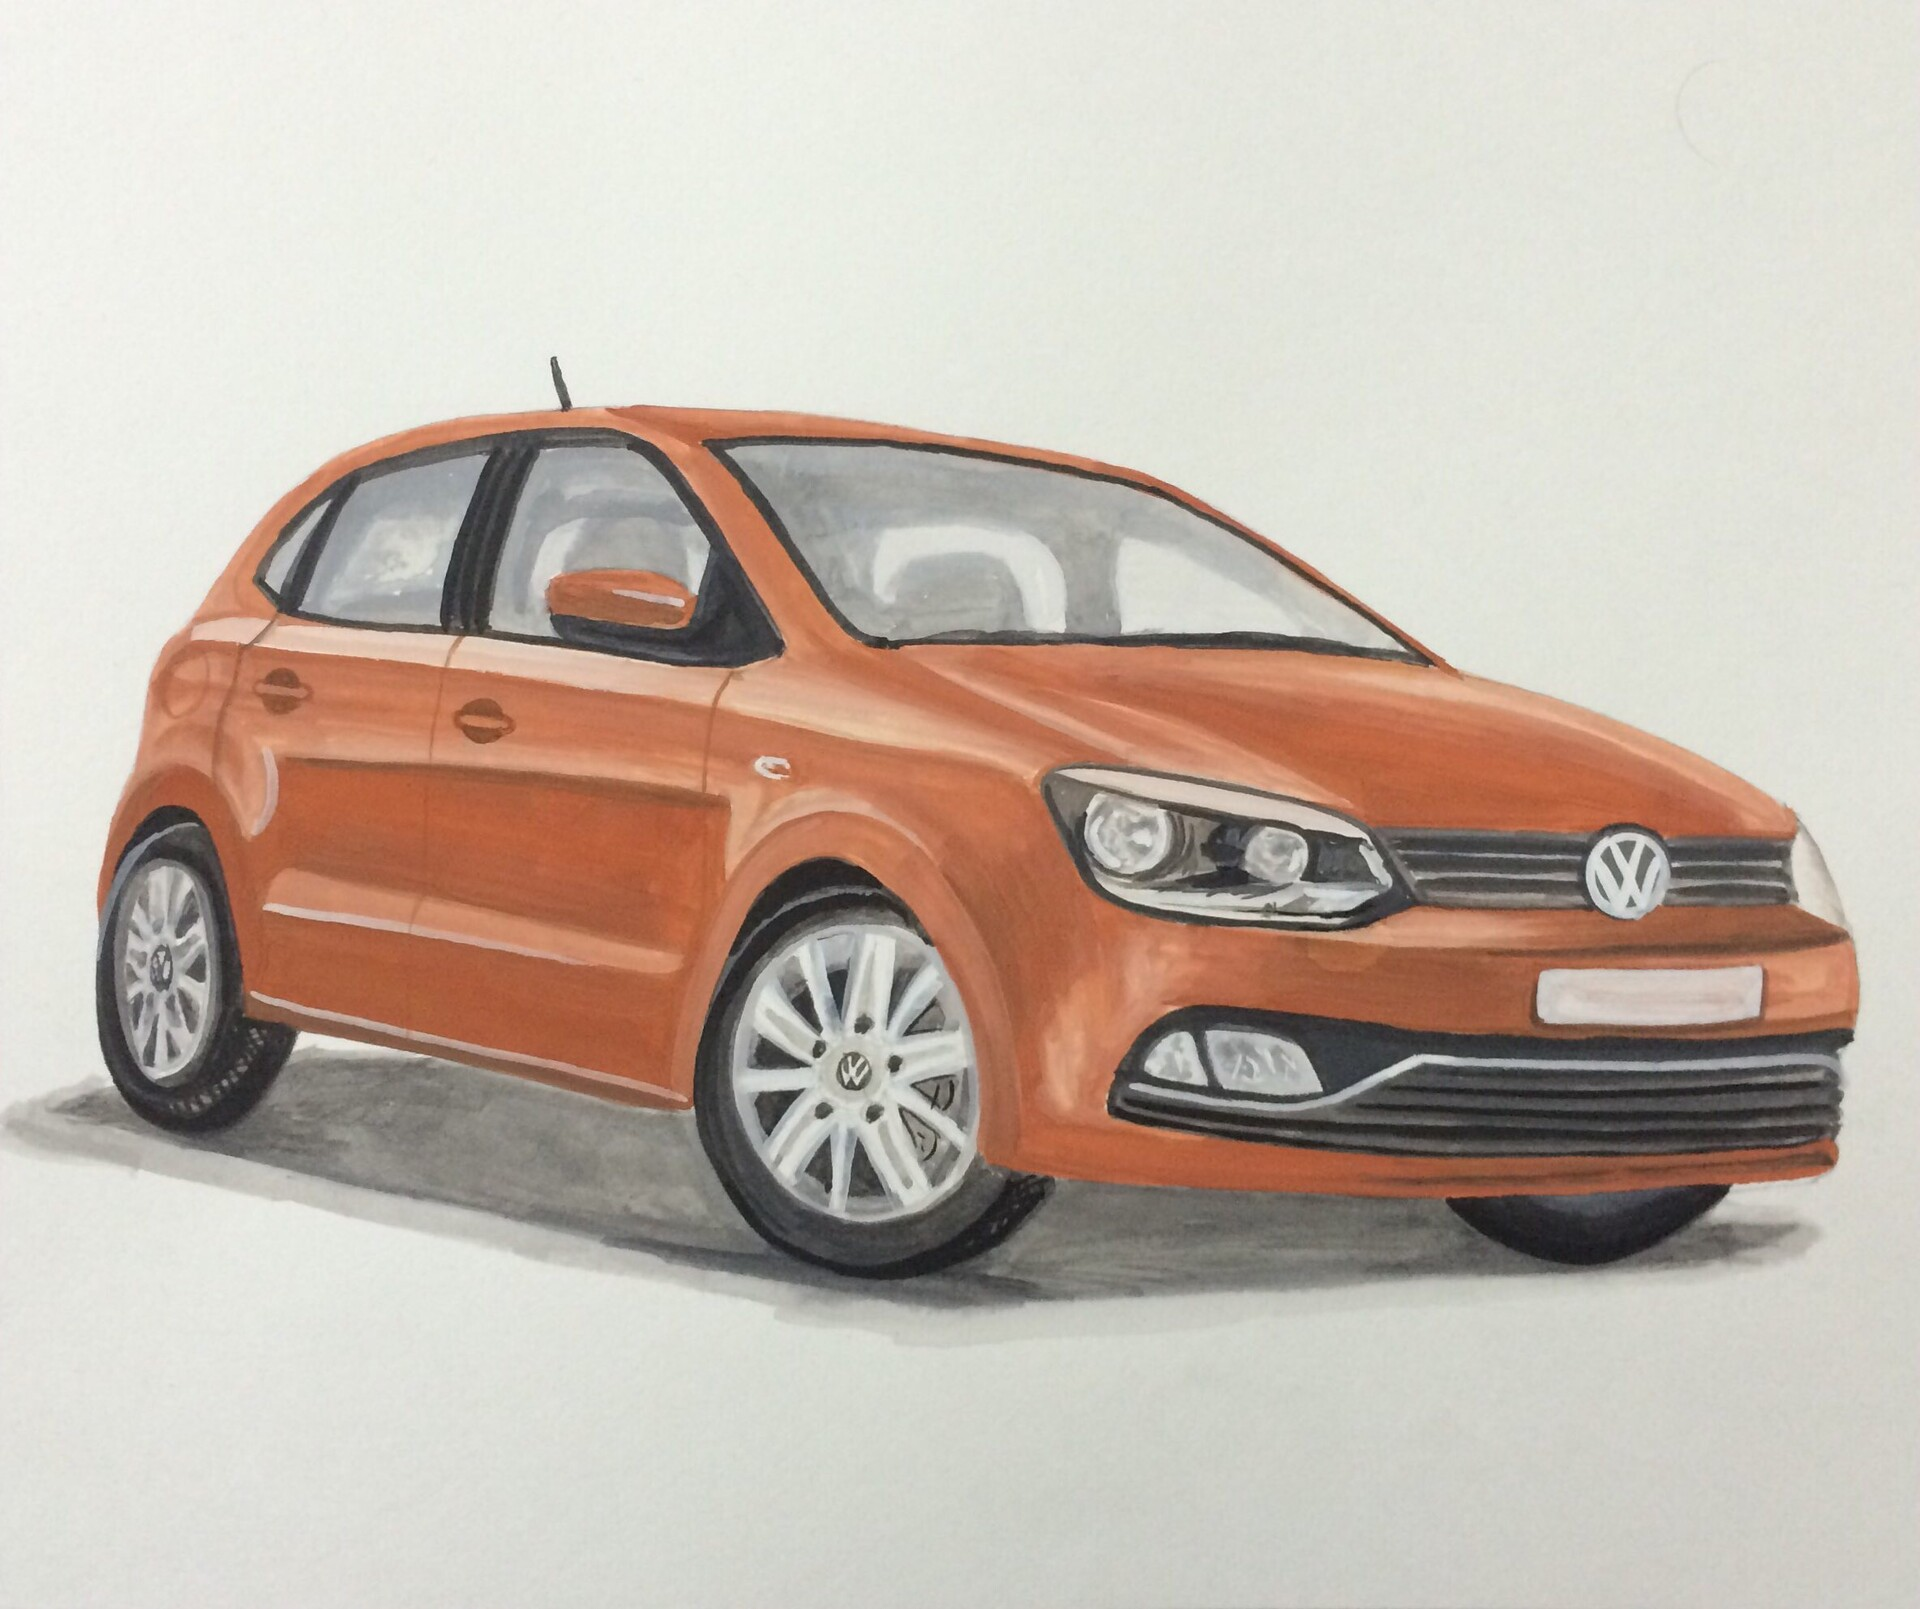 VW Polo - Poster colors on paper